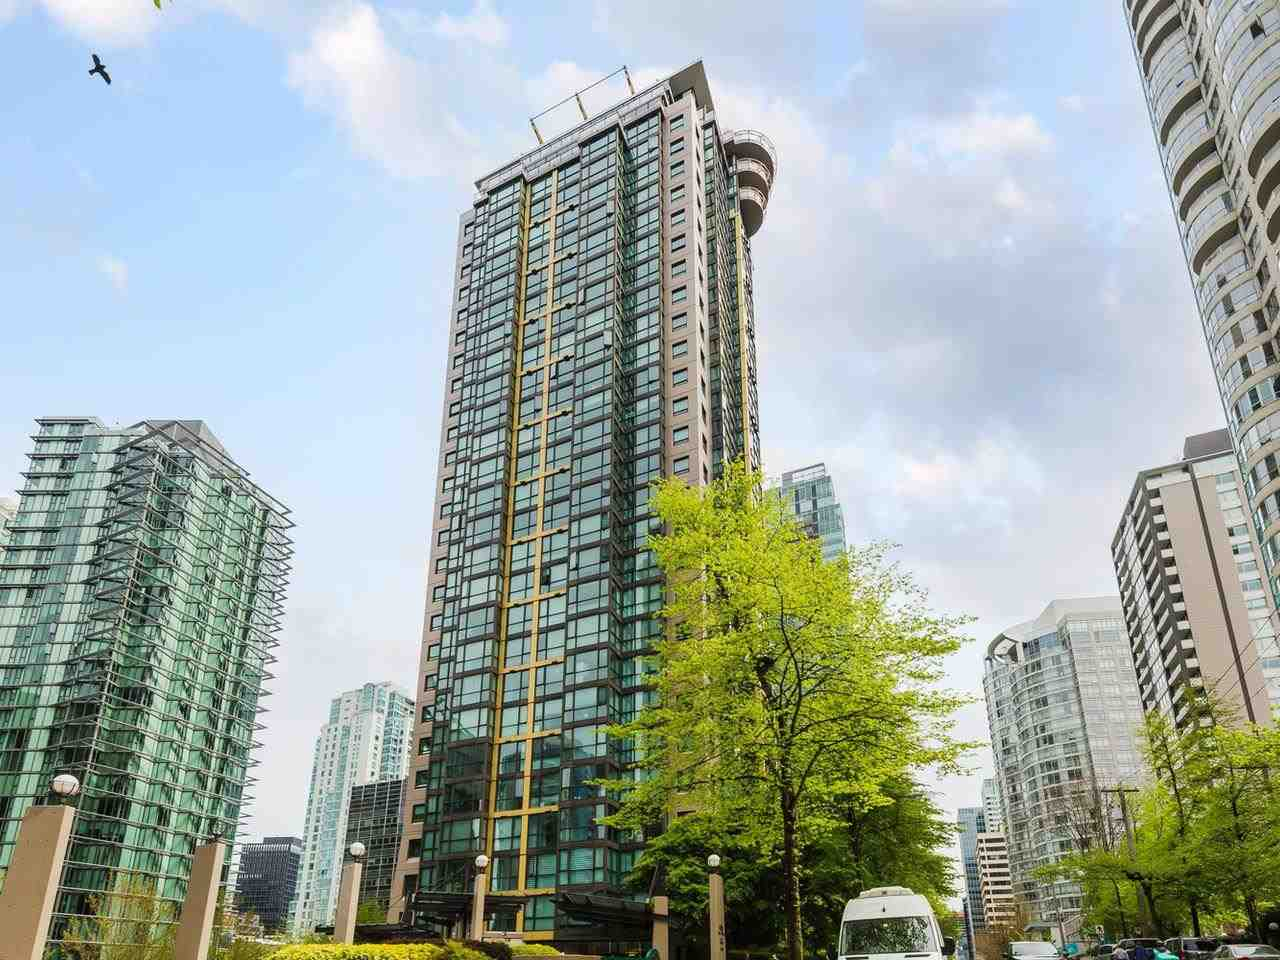 2701 1331 ALBERNI STREET - West End VW Apartment/Condo for sale, 3 Bedrooms (R2576100) - #1